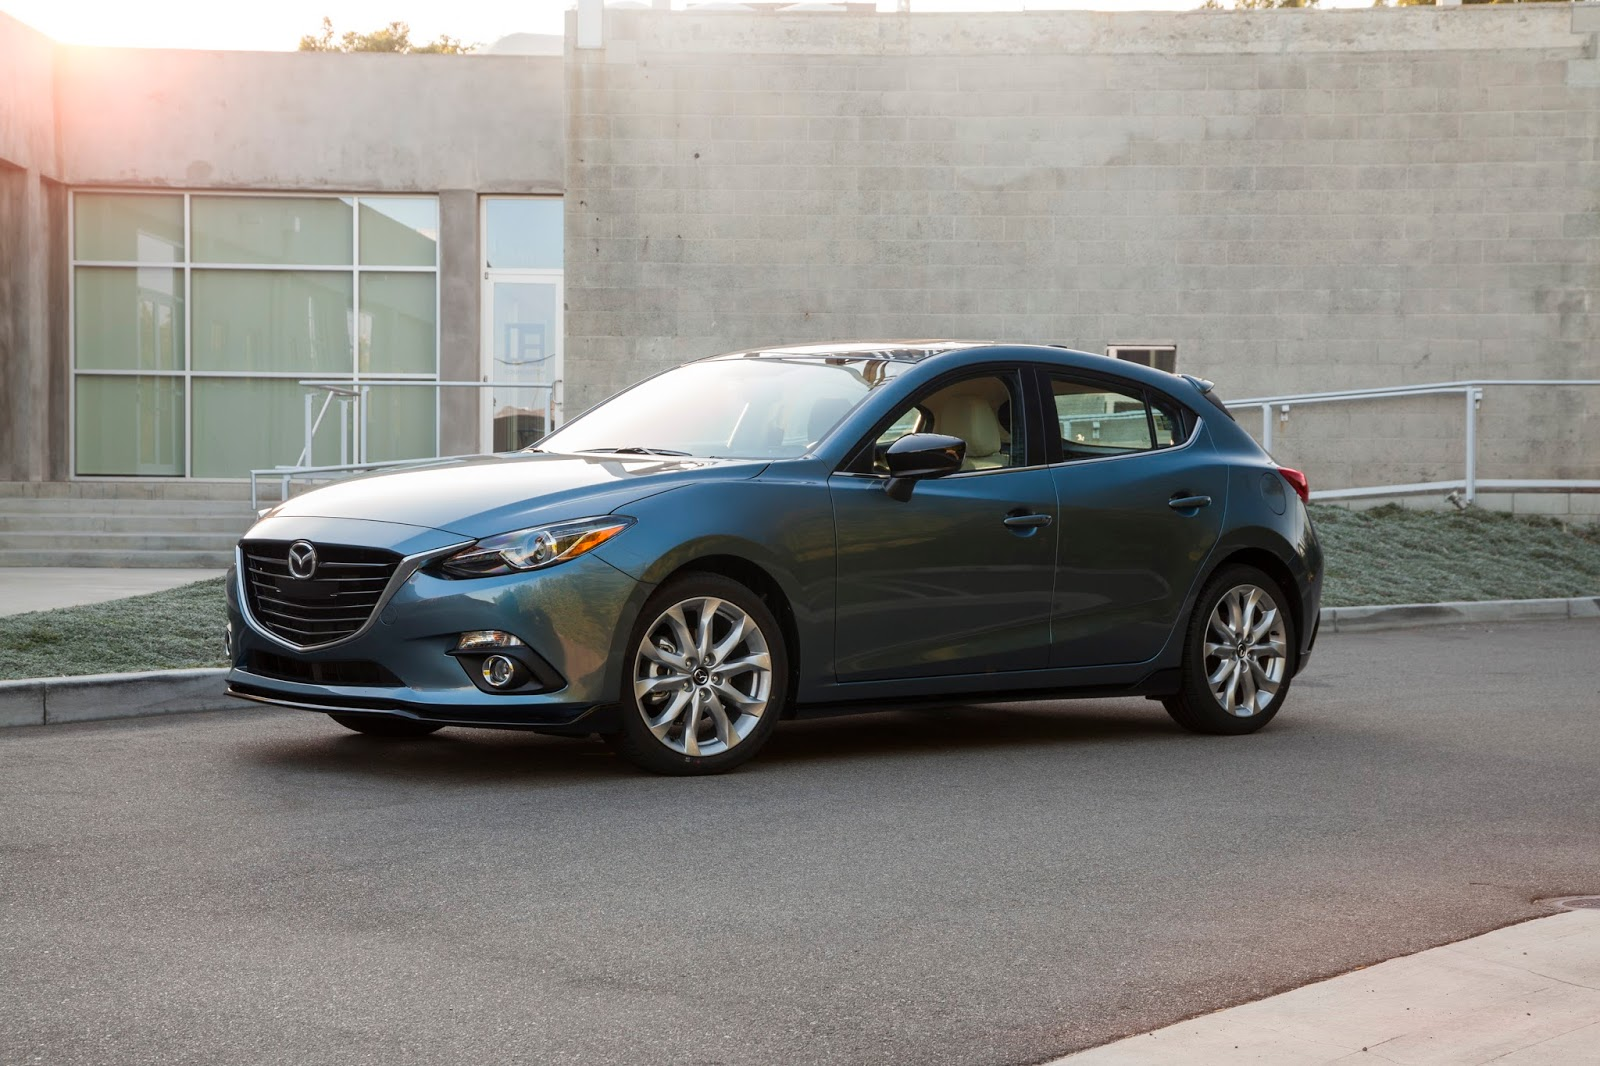 hight resolution of why am i doing a writeup on a 2015 mazda 3 oil and filter change on a blog focused on electric bikes solar and small electronics